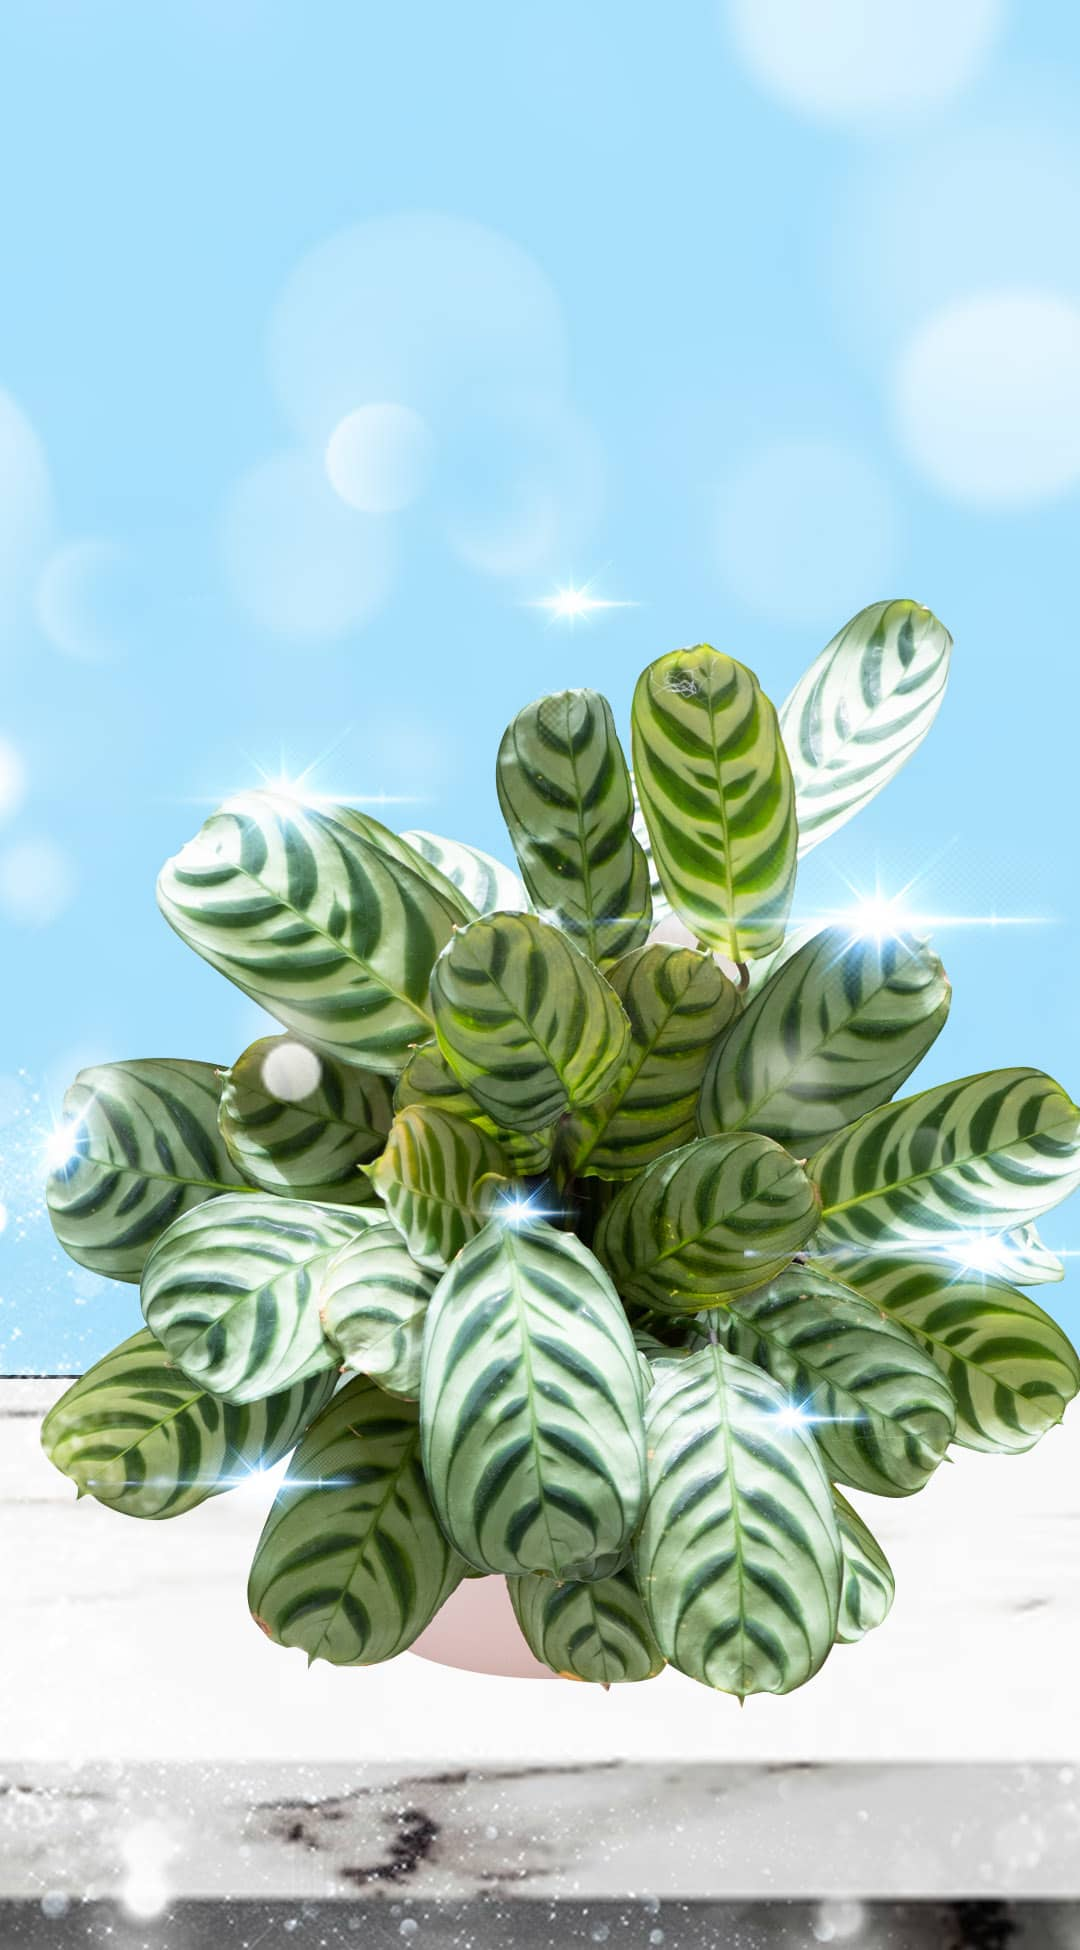 10 Non-Toxic House Plants Safe For Pets and Kids - THE SOWELL